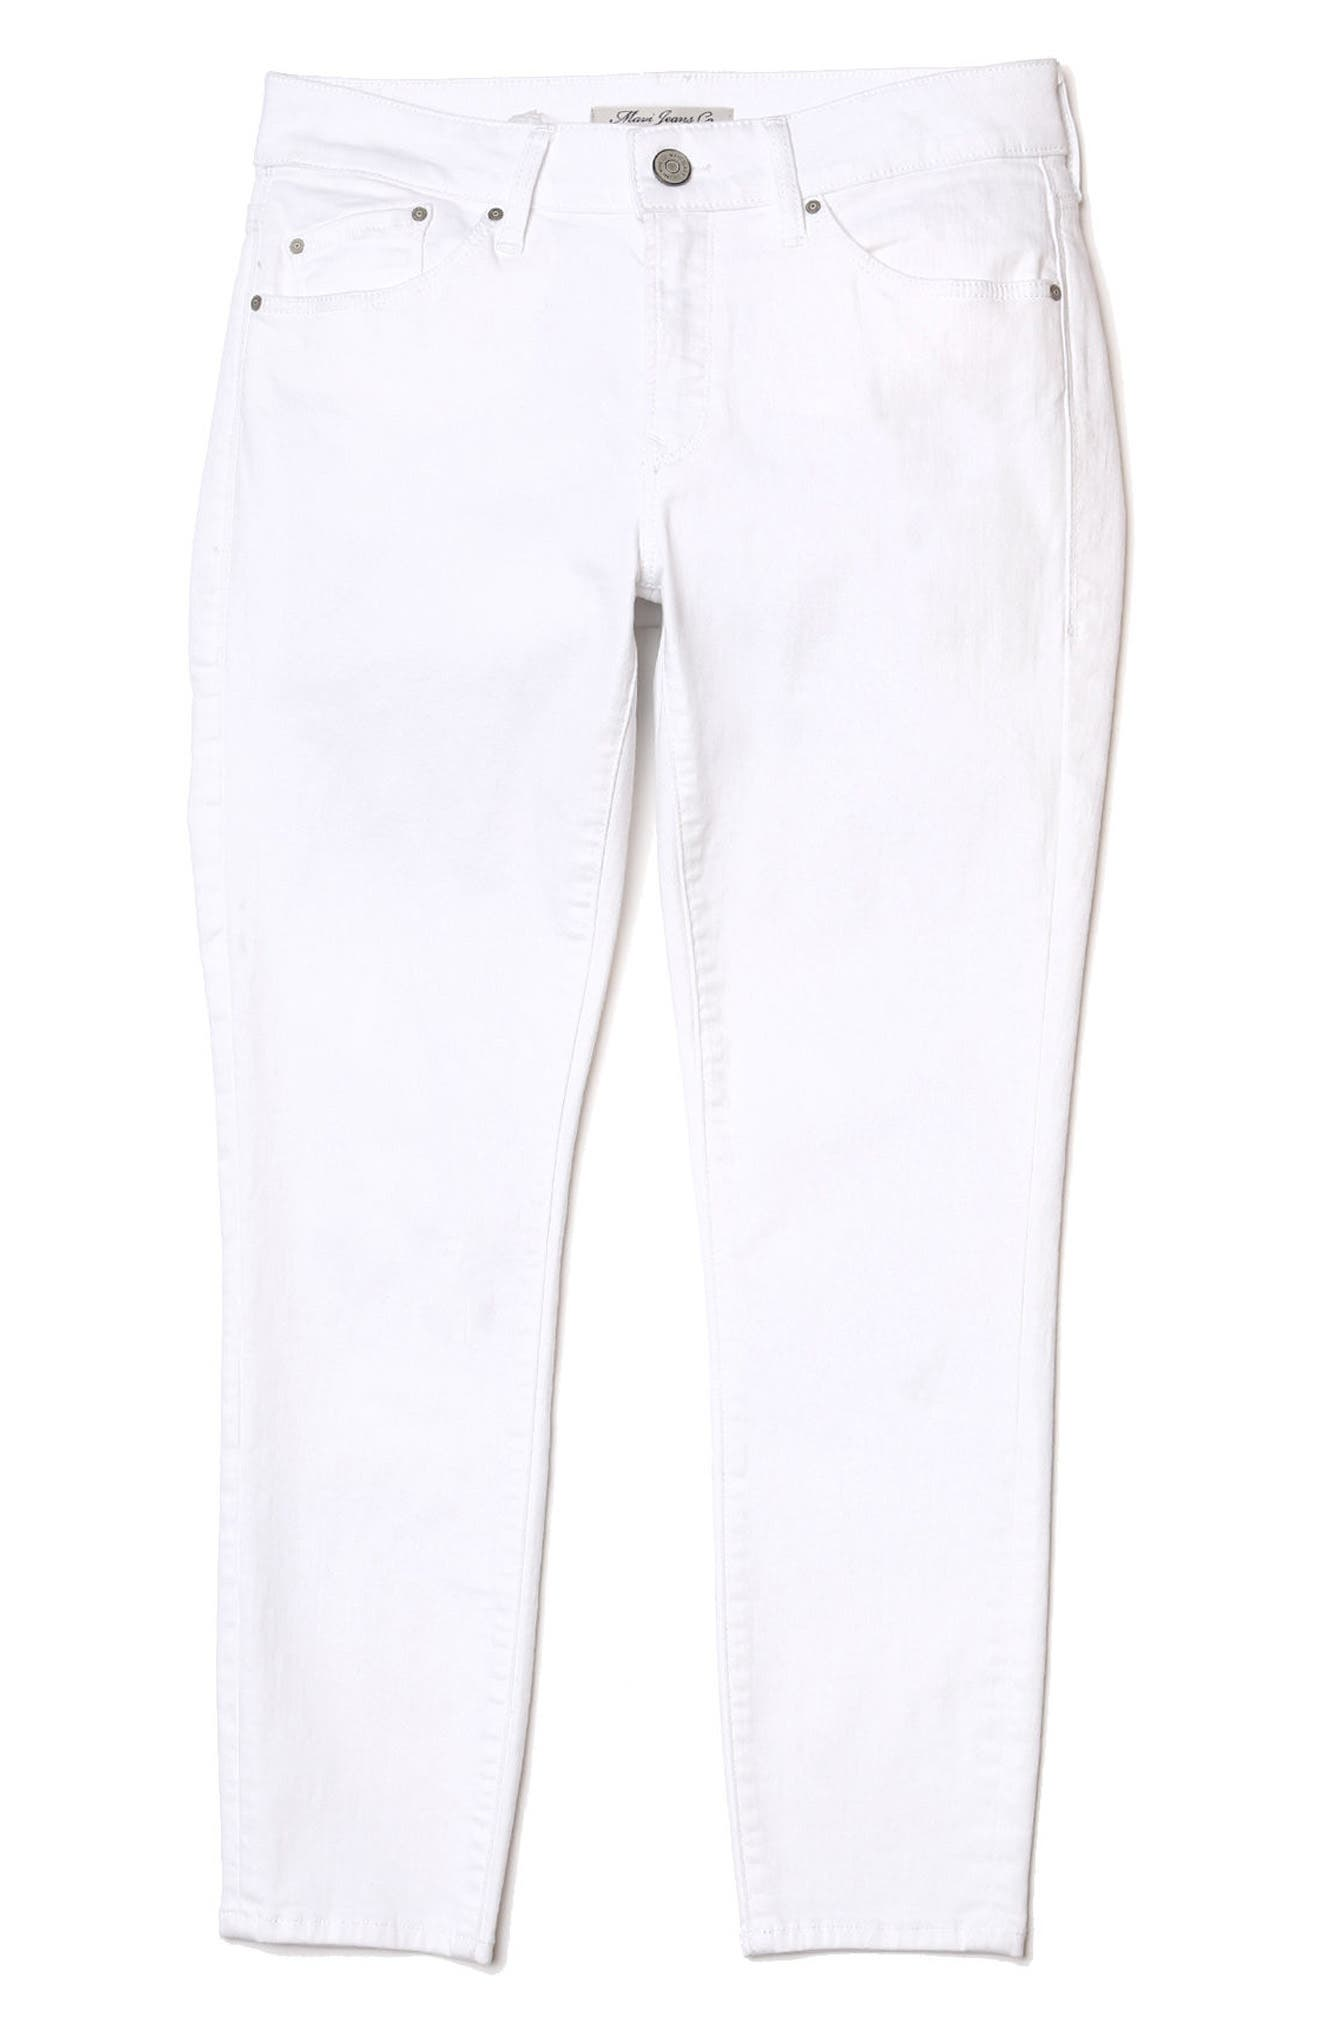 Adriana Ankle Jeans,                             Alternate thumbnail 4, color,                             White Tribeca